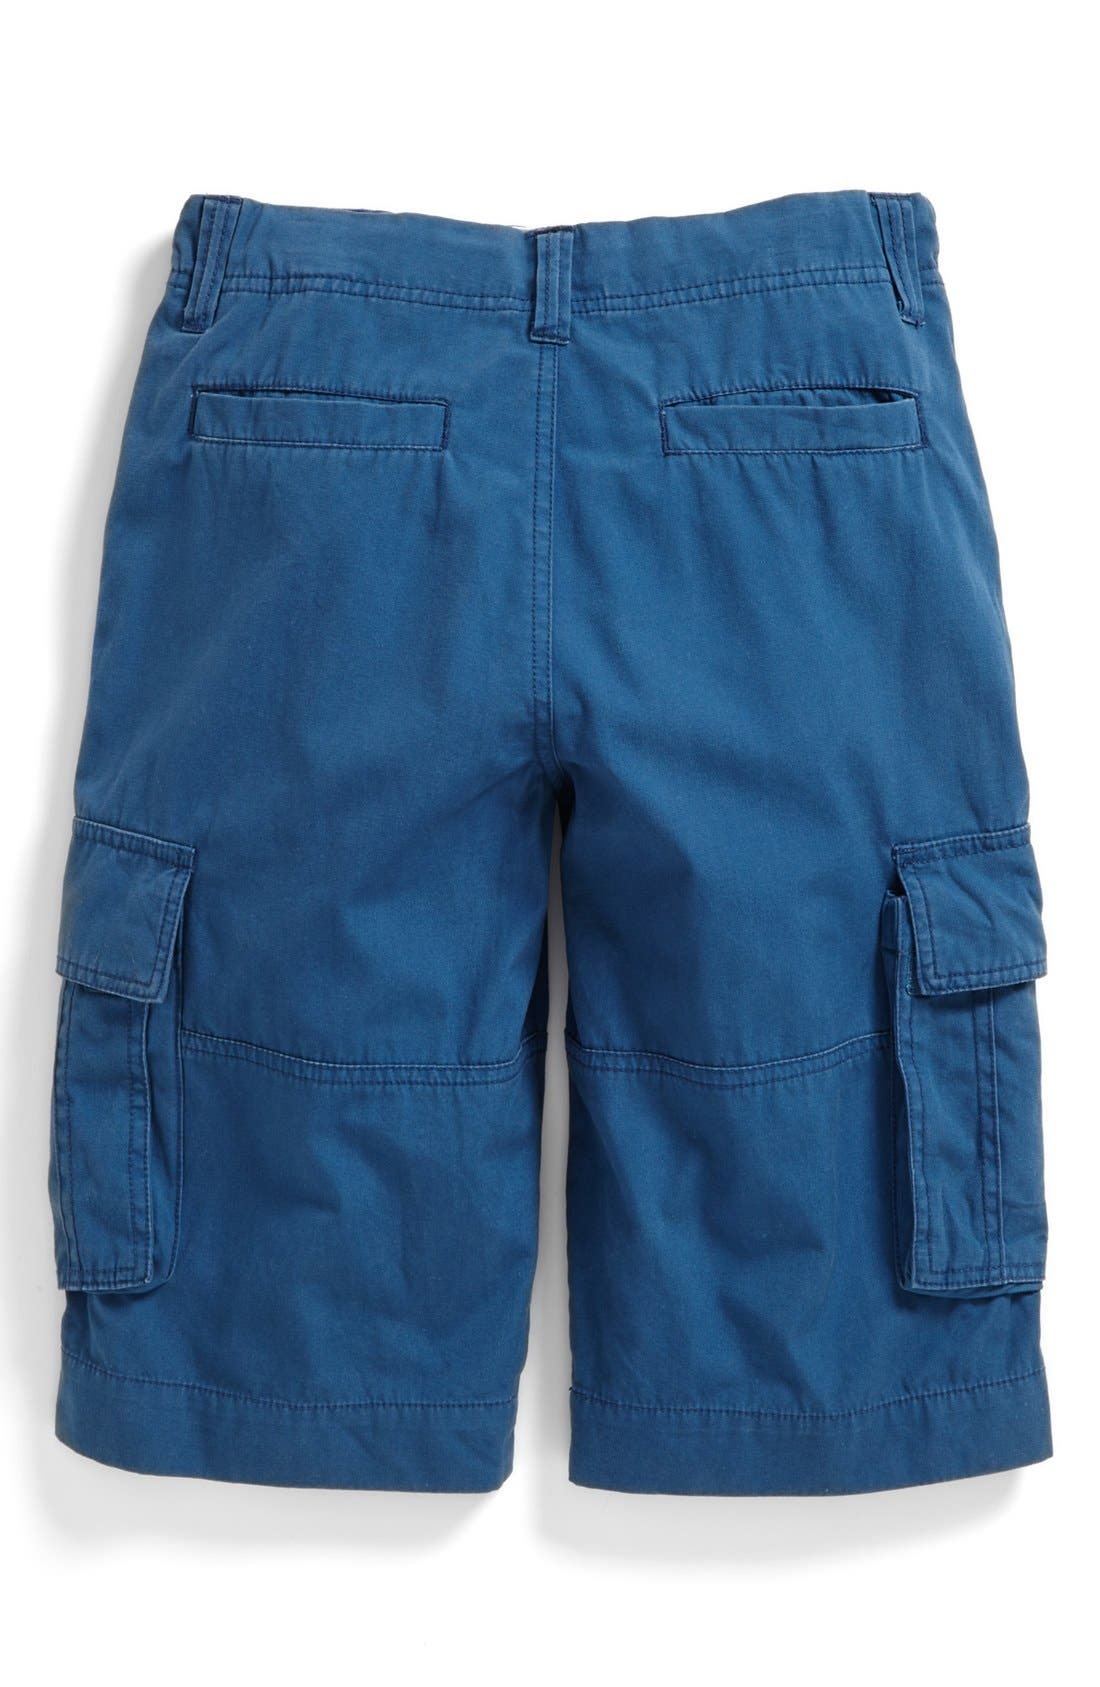 Alternate Image 2  - Tucker + Tate Cargo Shorts (Big Boys)